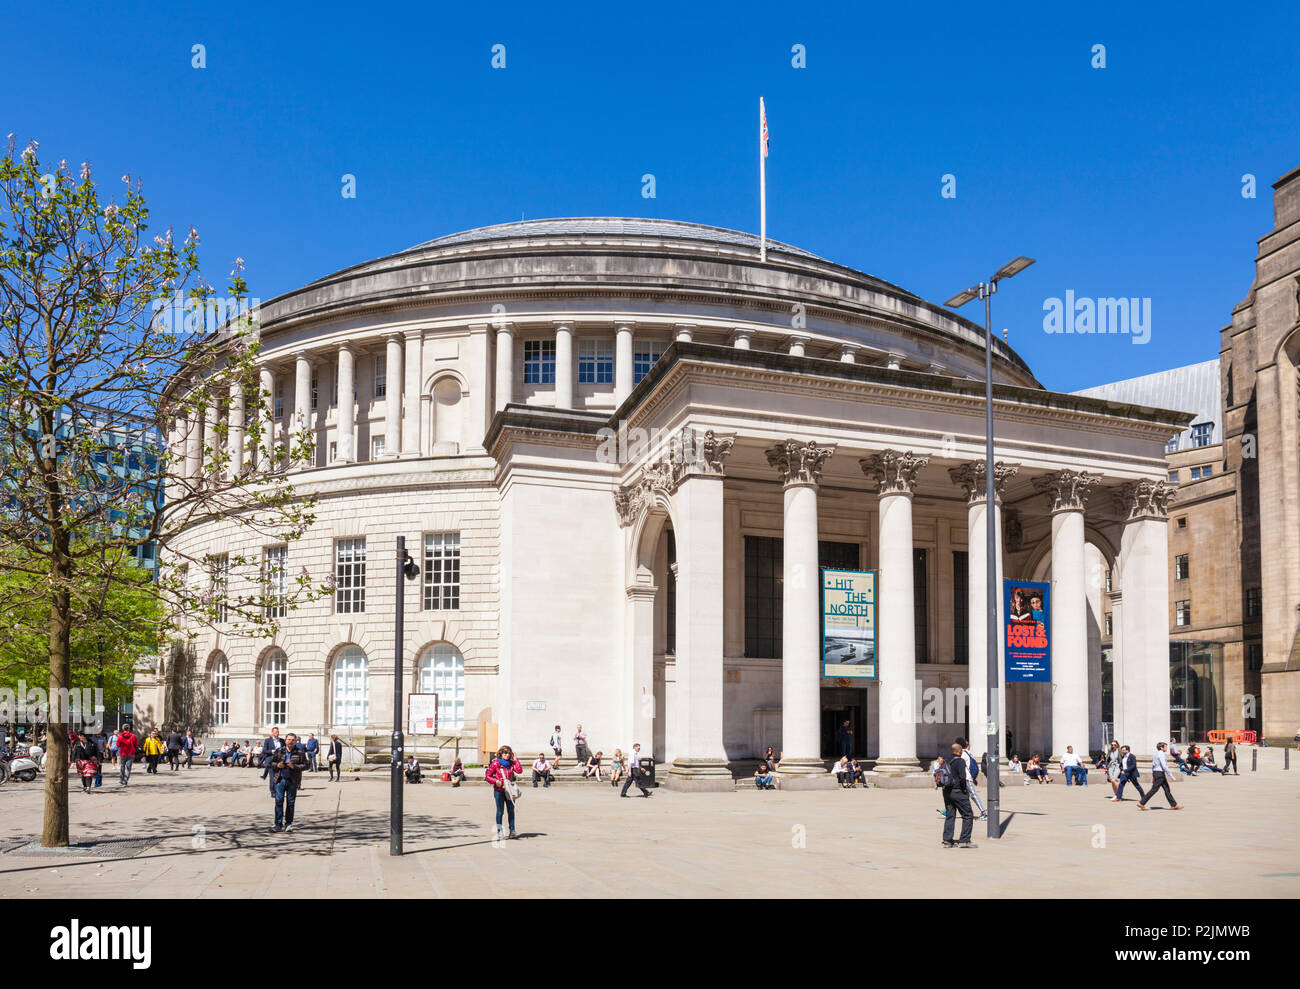 England Manchester England greater Manchester City centre city center manchester central library st peters square manchester city centre manchester uk - Stock Image